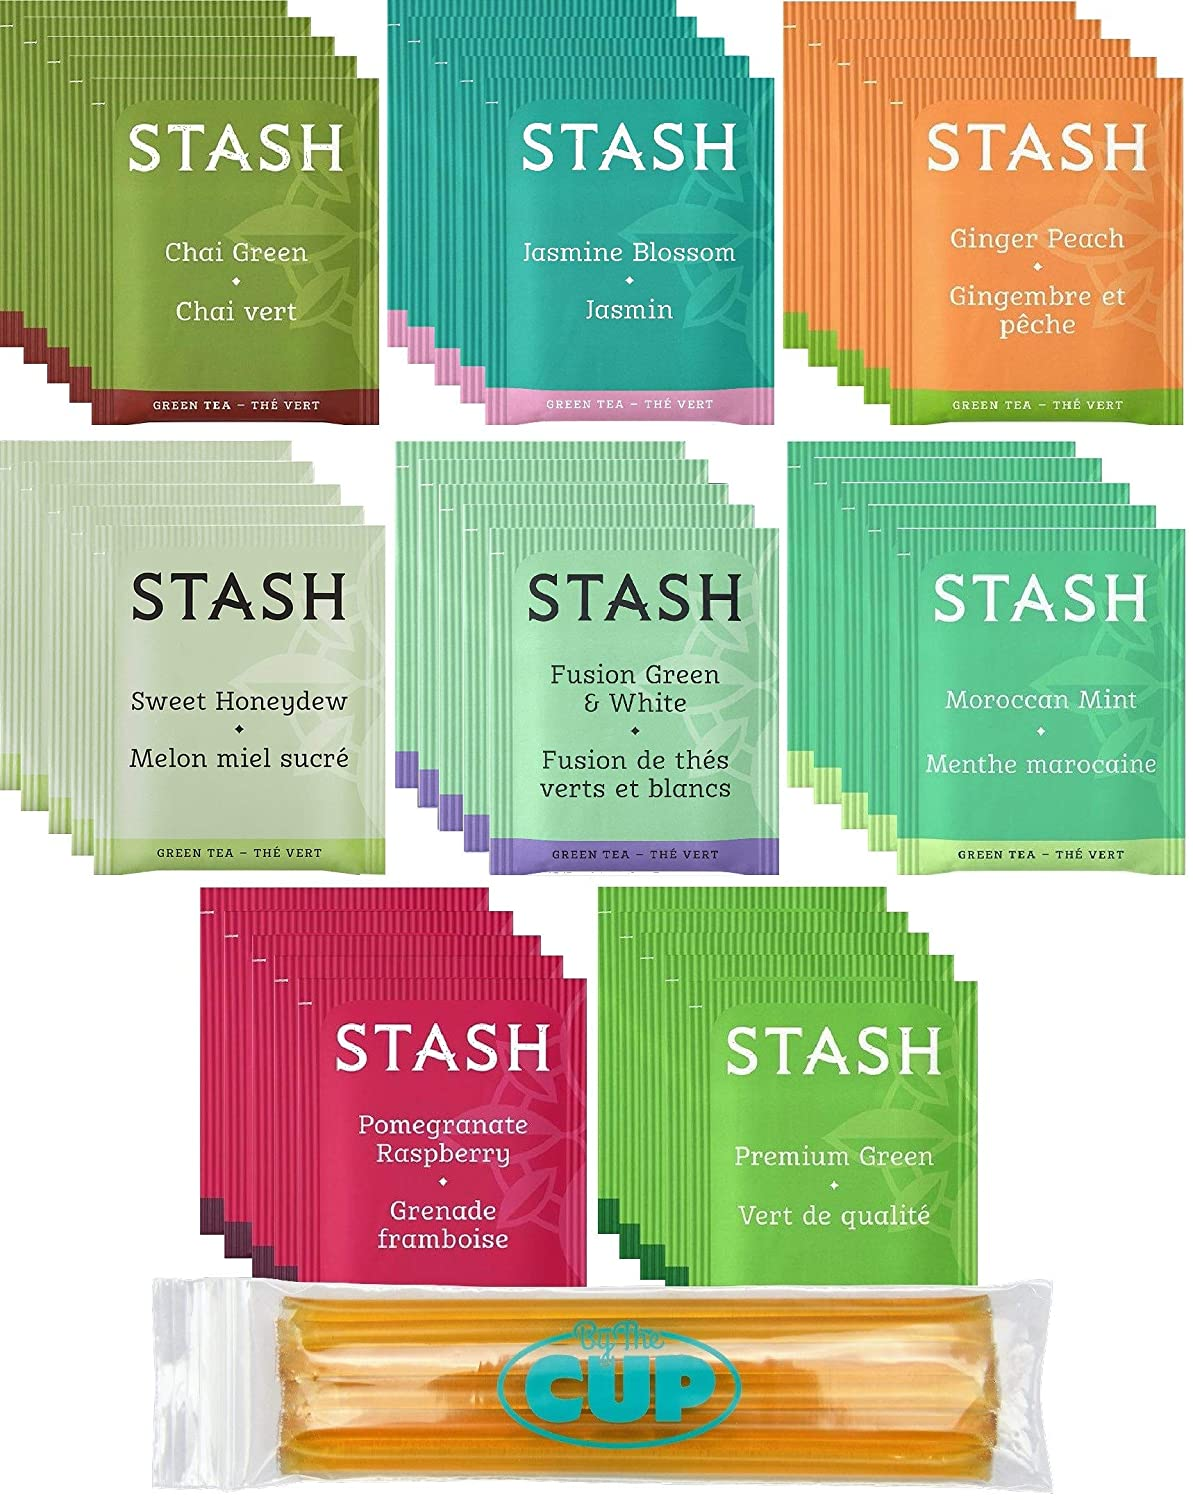 Stash Tea Bag & By The Cup Honey Sticks Variety Sampler 40 Ct - 8 Flavor Assortment - includes Green & White Blends